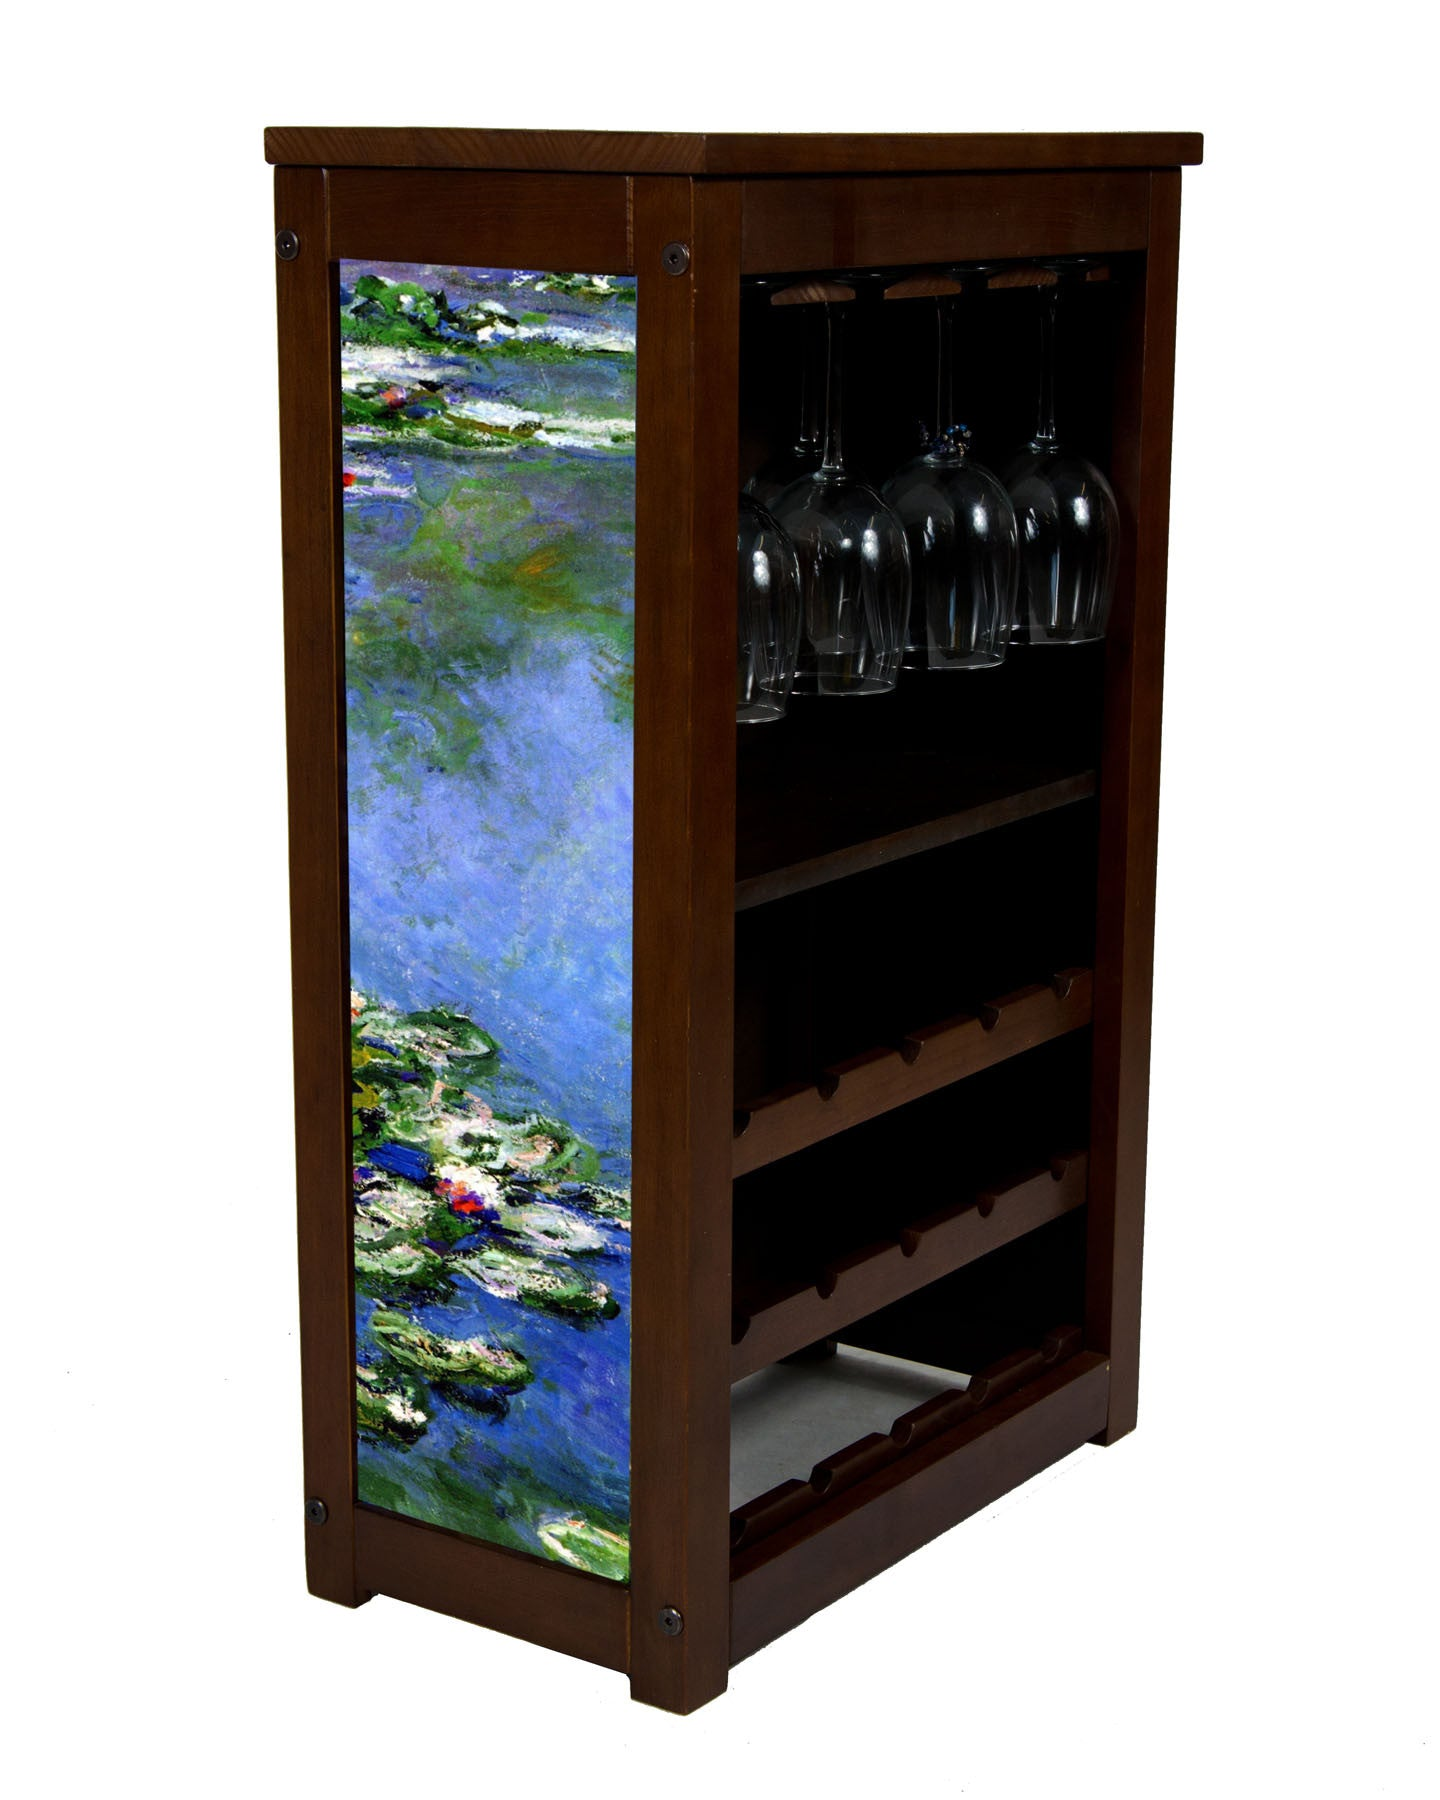 wine cabinet with Monet's Water Lilies